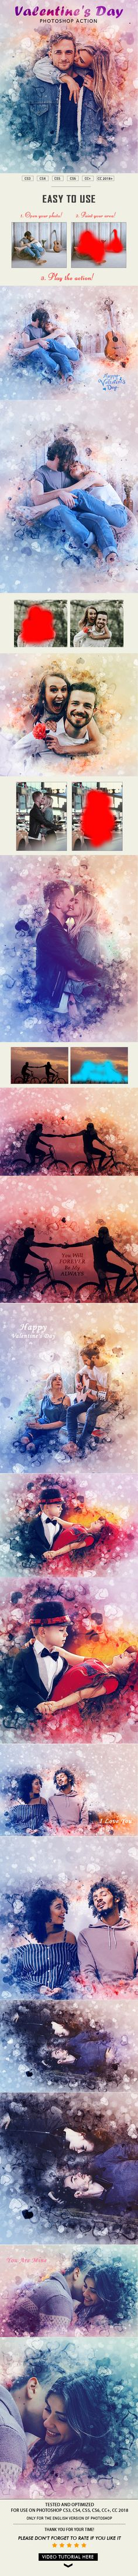 #Valentines Day #Photoshop #Action - Photo Effects Actions